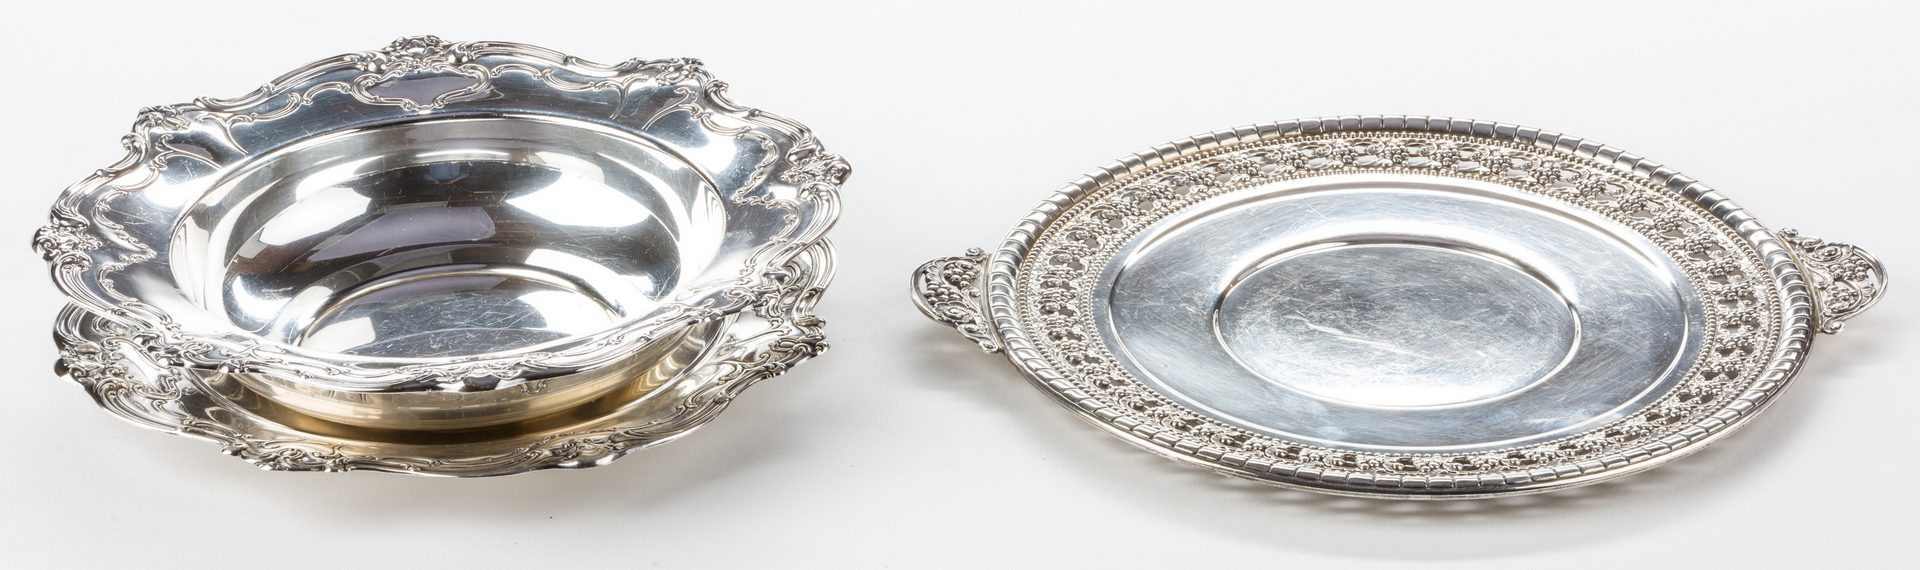 Lot 551: Sterling Bowl, Plate and Tray, Chantilly Duchess and Nordic patterns